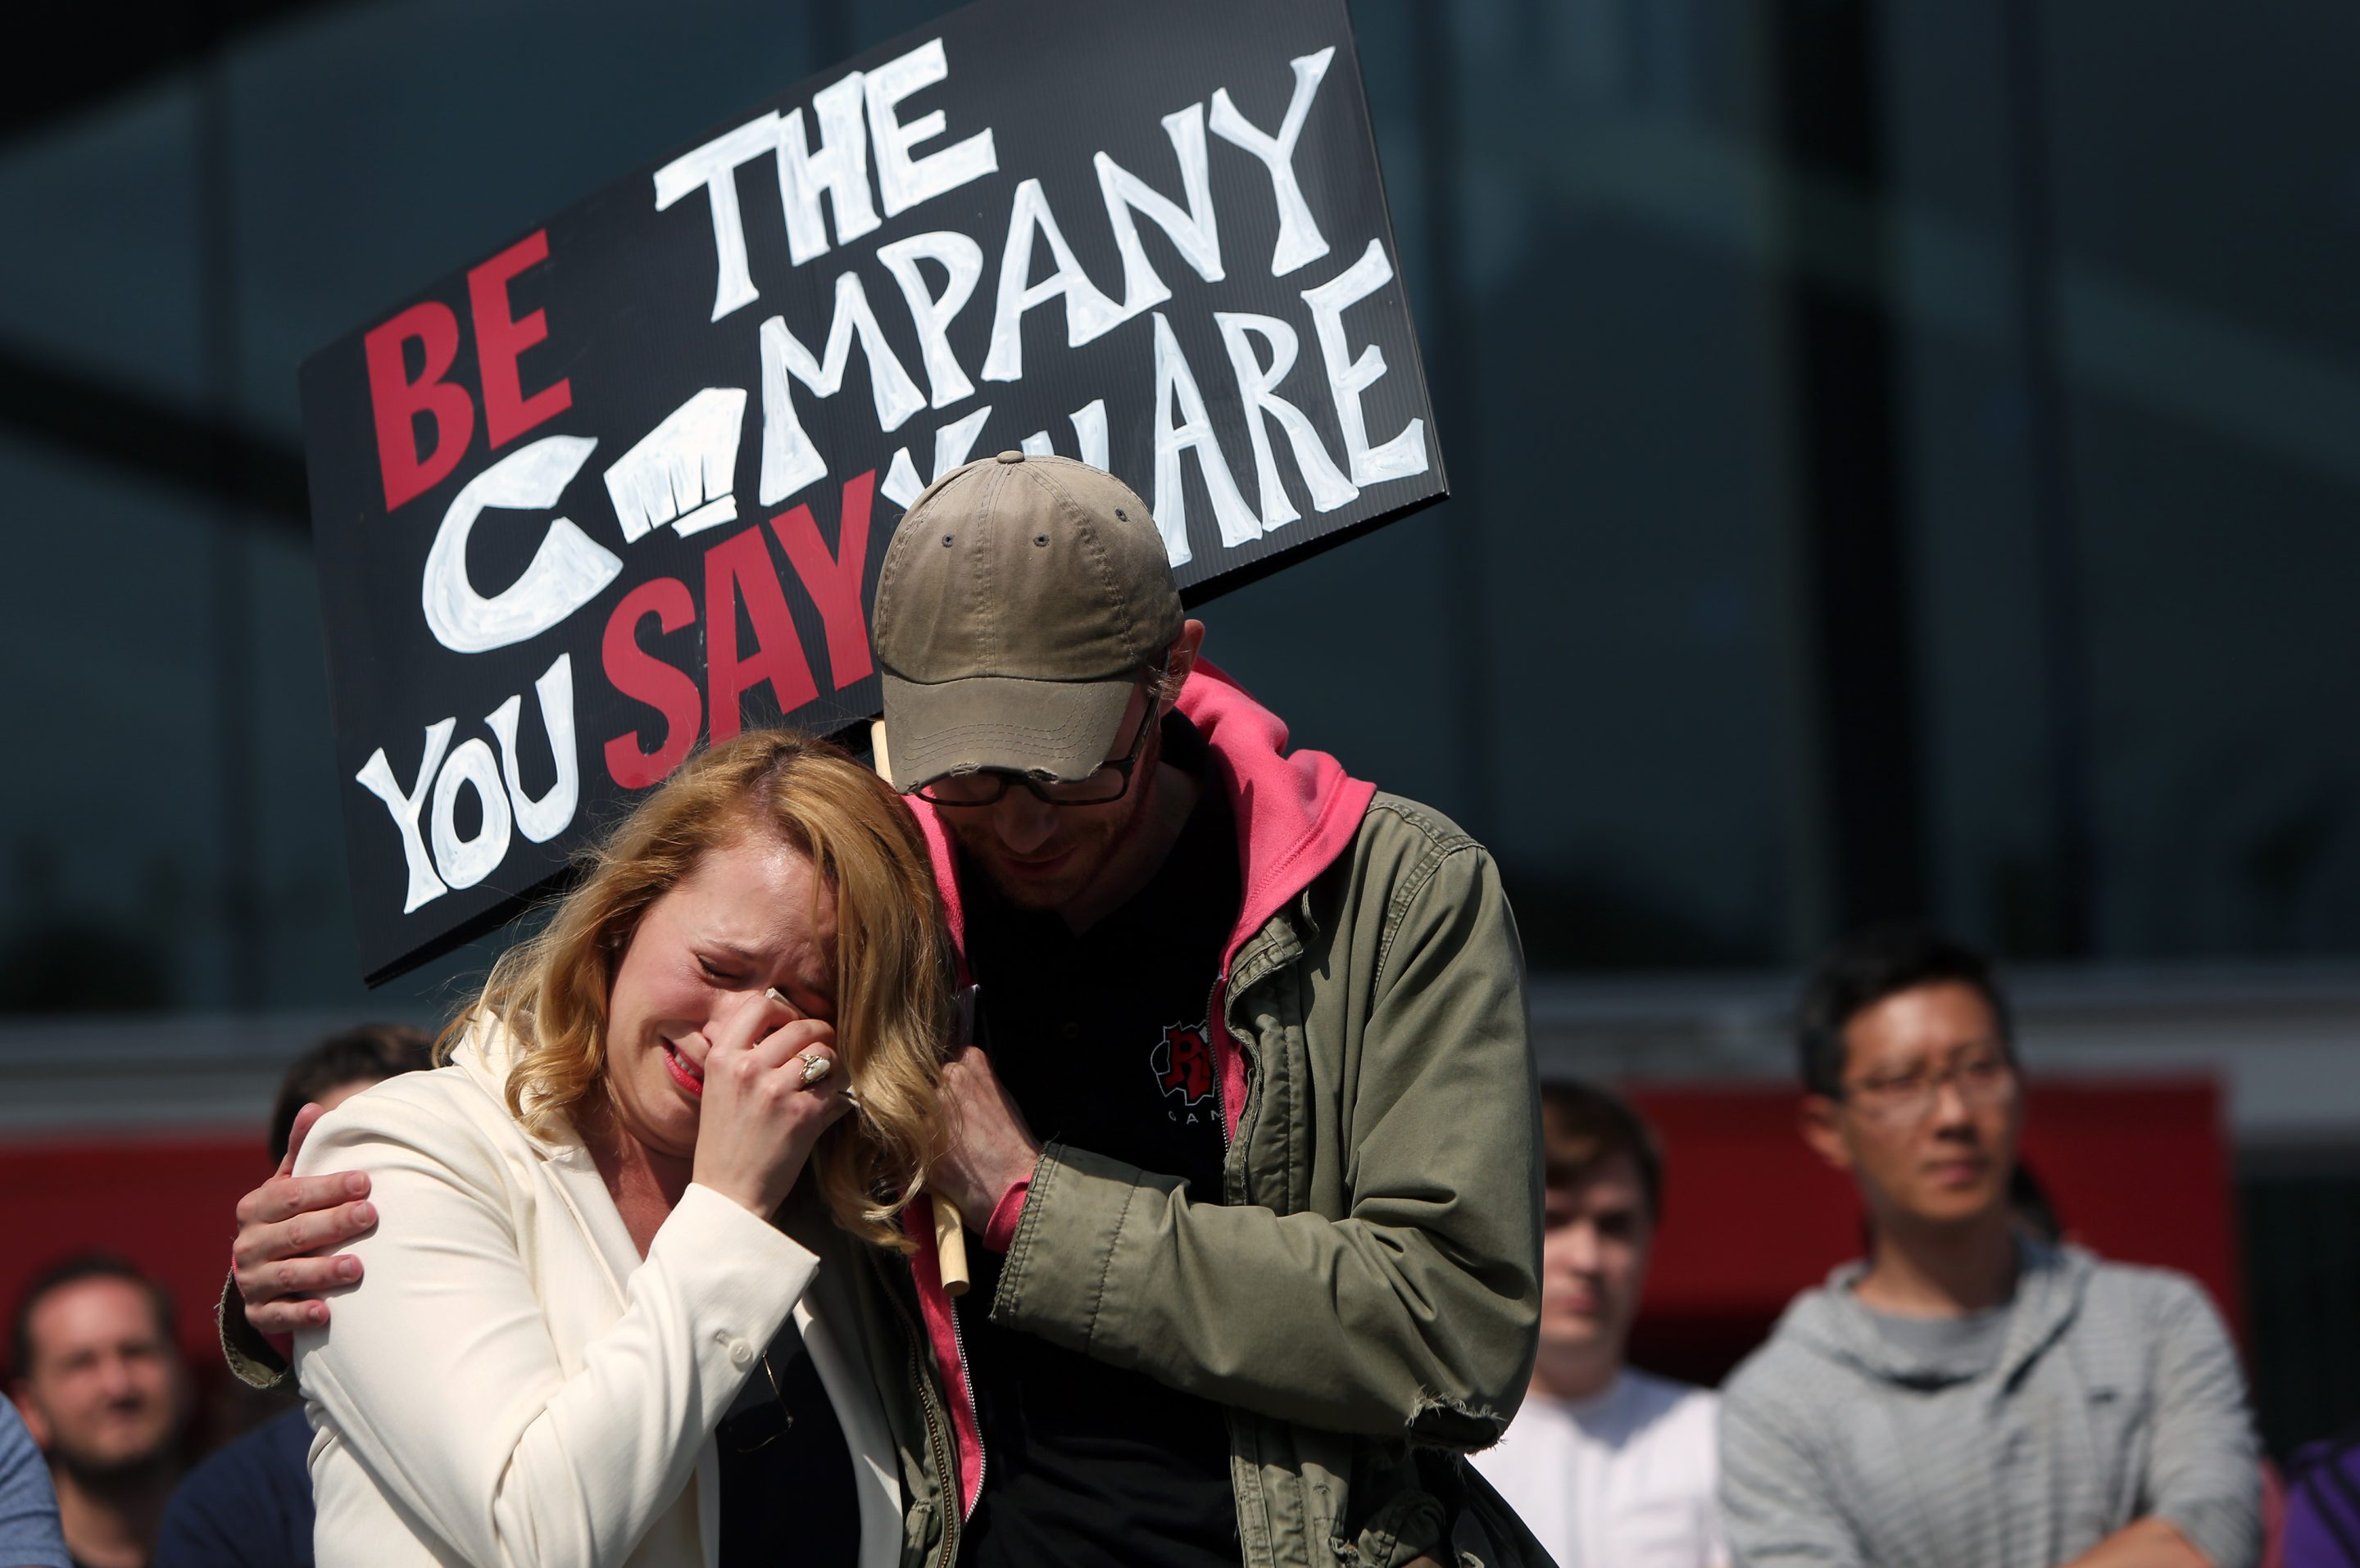 LOS ANGELES, CA - MAY 06: Chanel Dawnée, left, embraces Andy Dohr, right, after he spoke during a staged walk out at Riot Games to protest the company's move to force arbitration on sexual harassment lawsuits on May 6, 2019, in Los Angeles, California. Dawnée is one of the plaintiffs in a suit against Riot Games. (Photo By Dania Maxwell/Los Angeles Times via Getty Images)